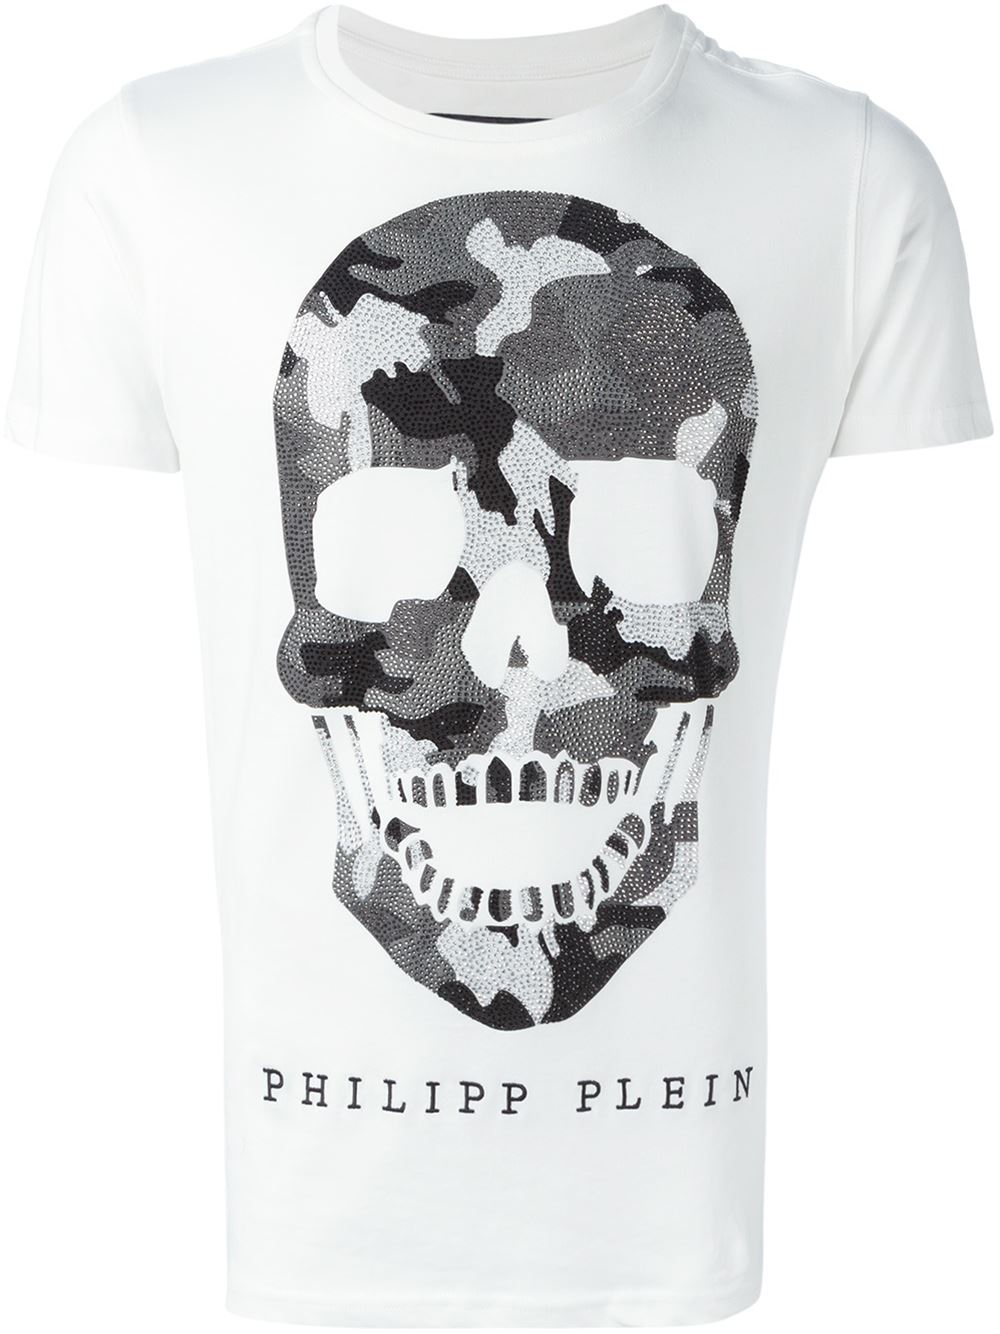 philipp plein 39 nani 39 t shirt in white for men lyst. Black Bedroom Furniture Sets. Home Design Ideas